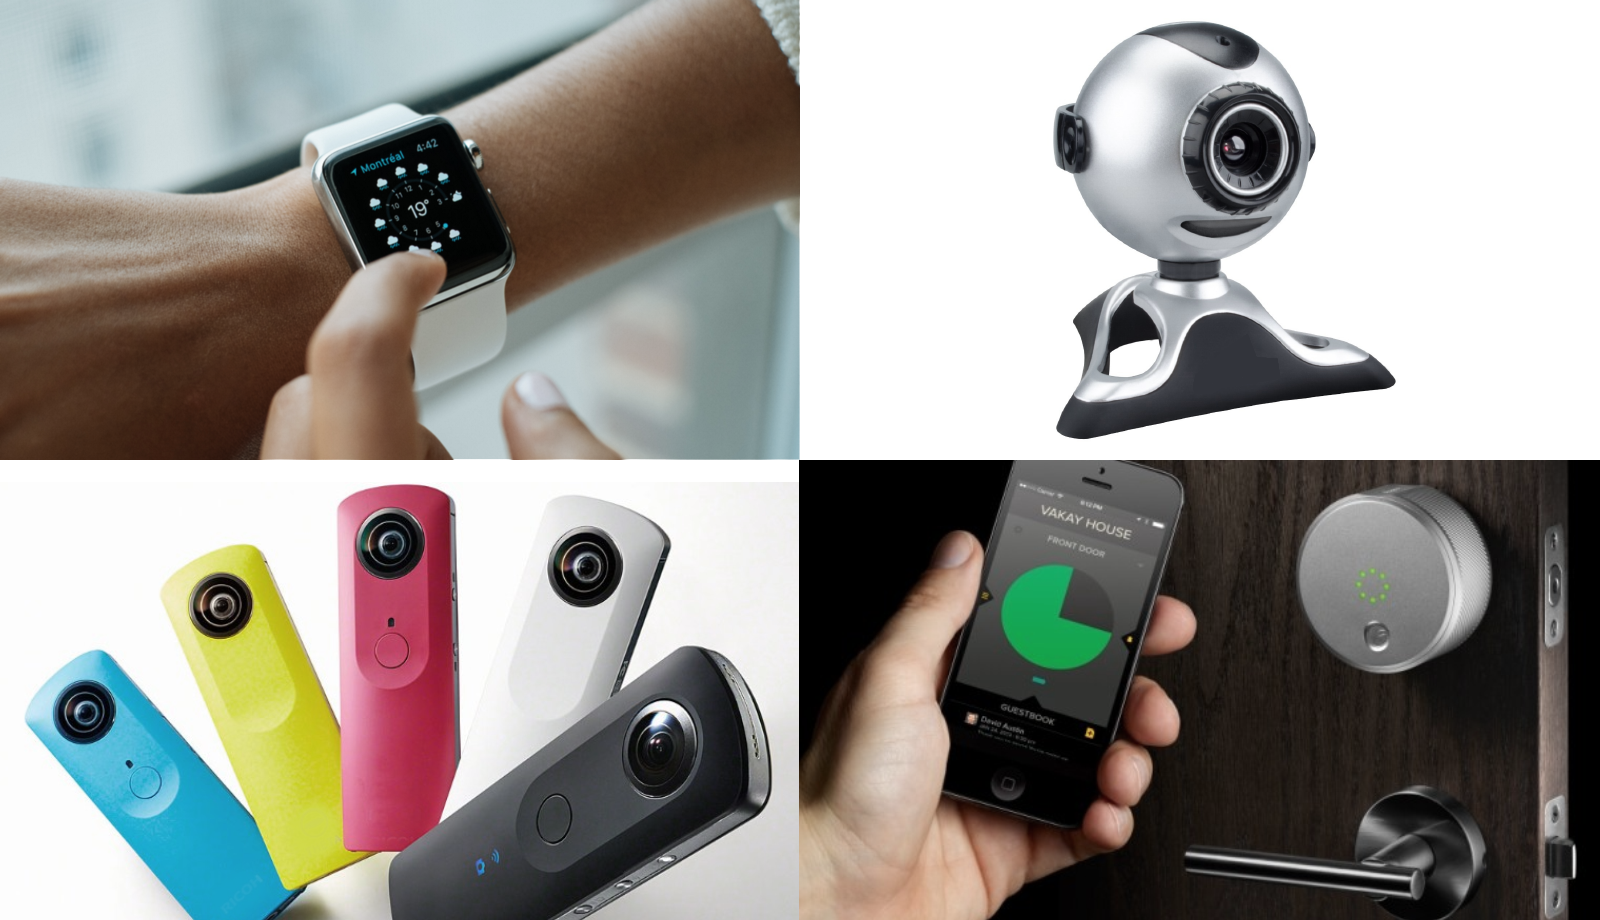 What Do You Think Are The Coolest Tech Gadgets Of 2016